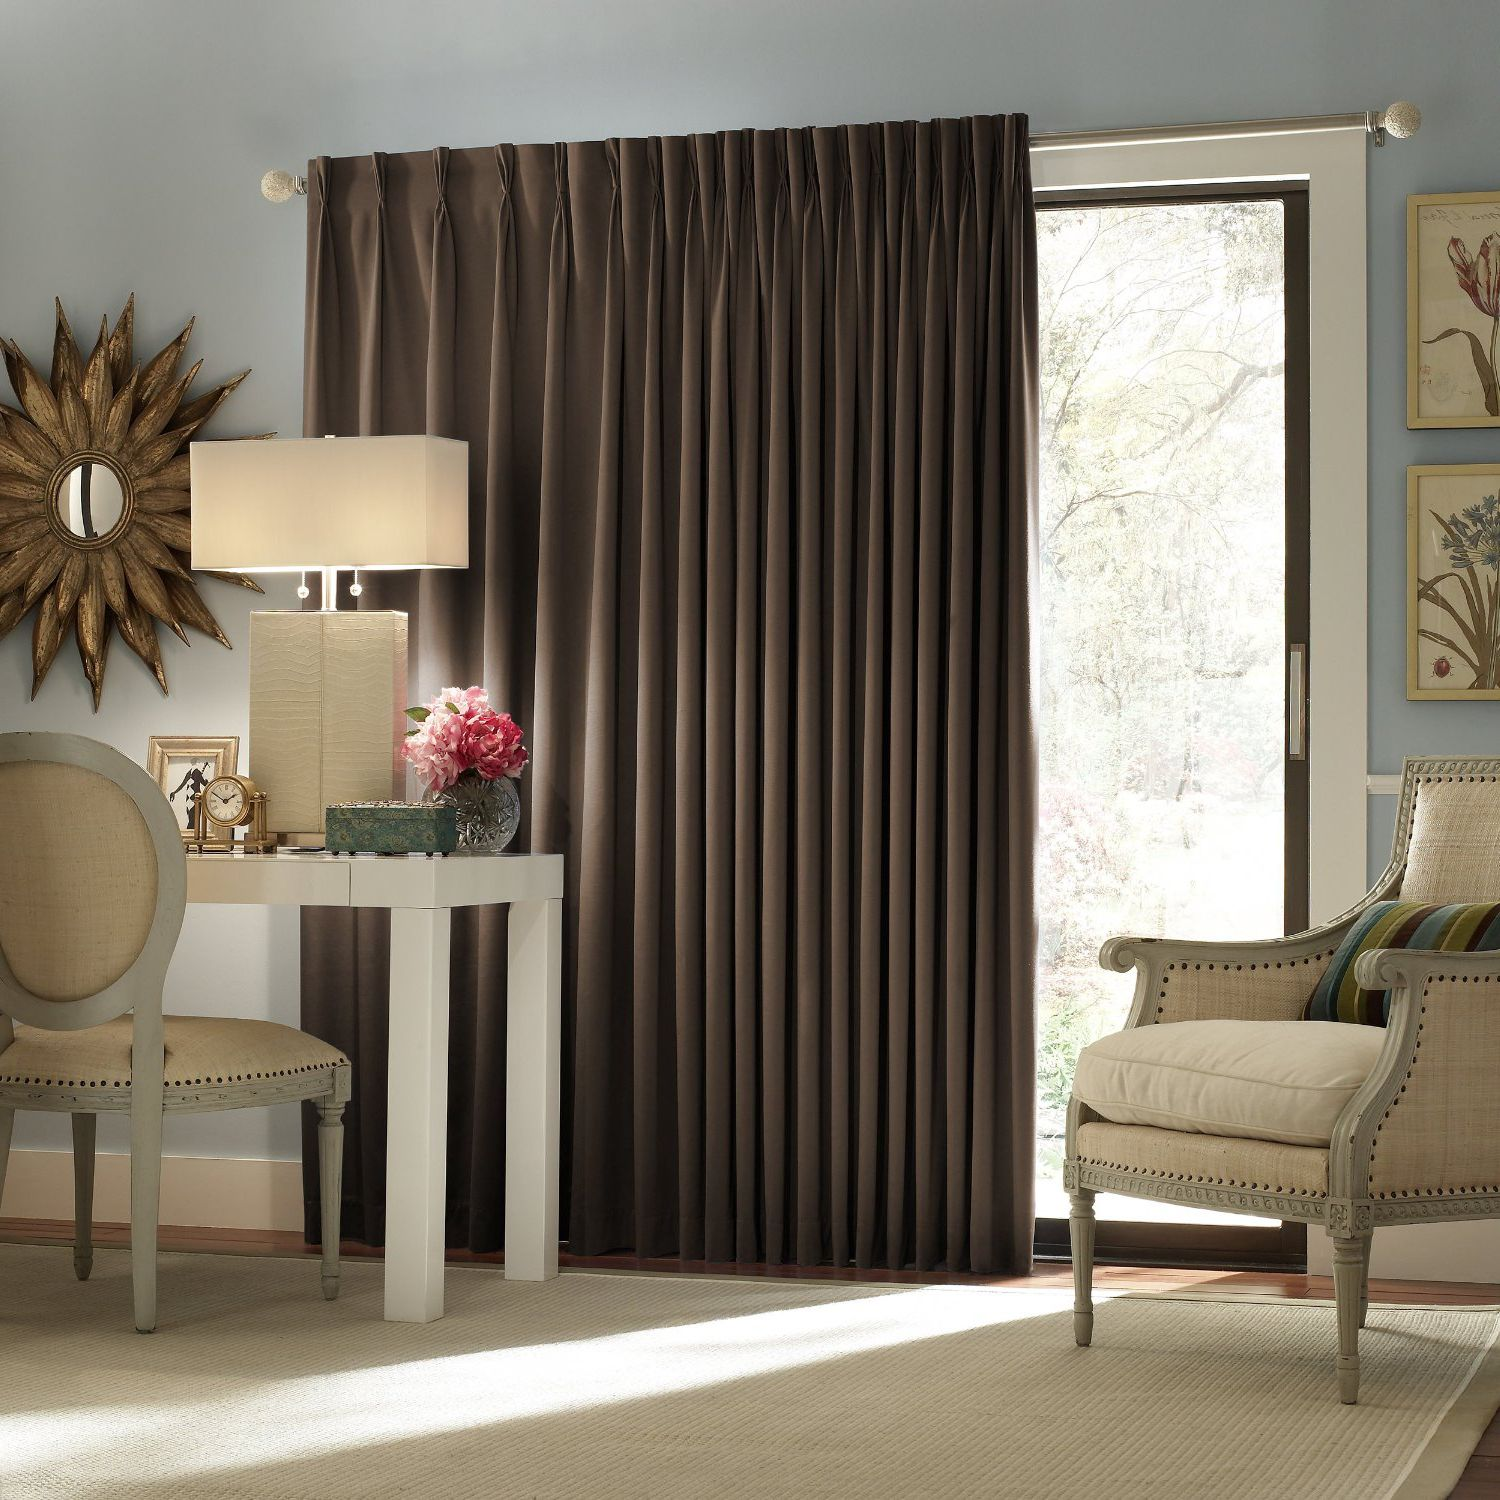 Kitchen French Door Curtains Curtains For French Doors